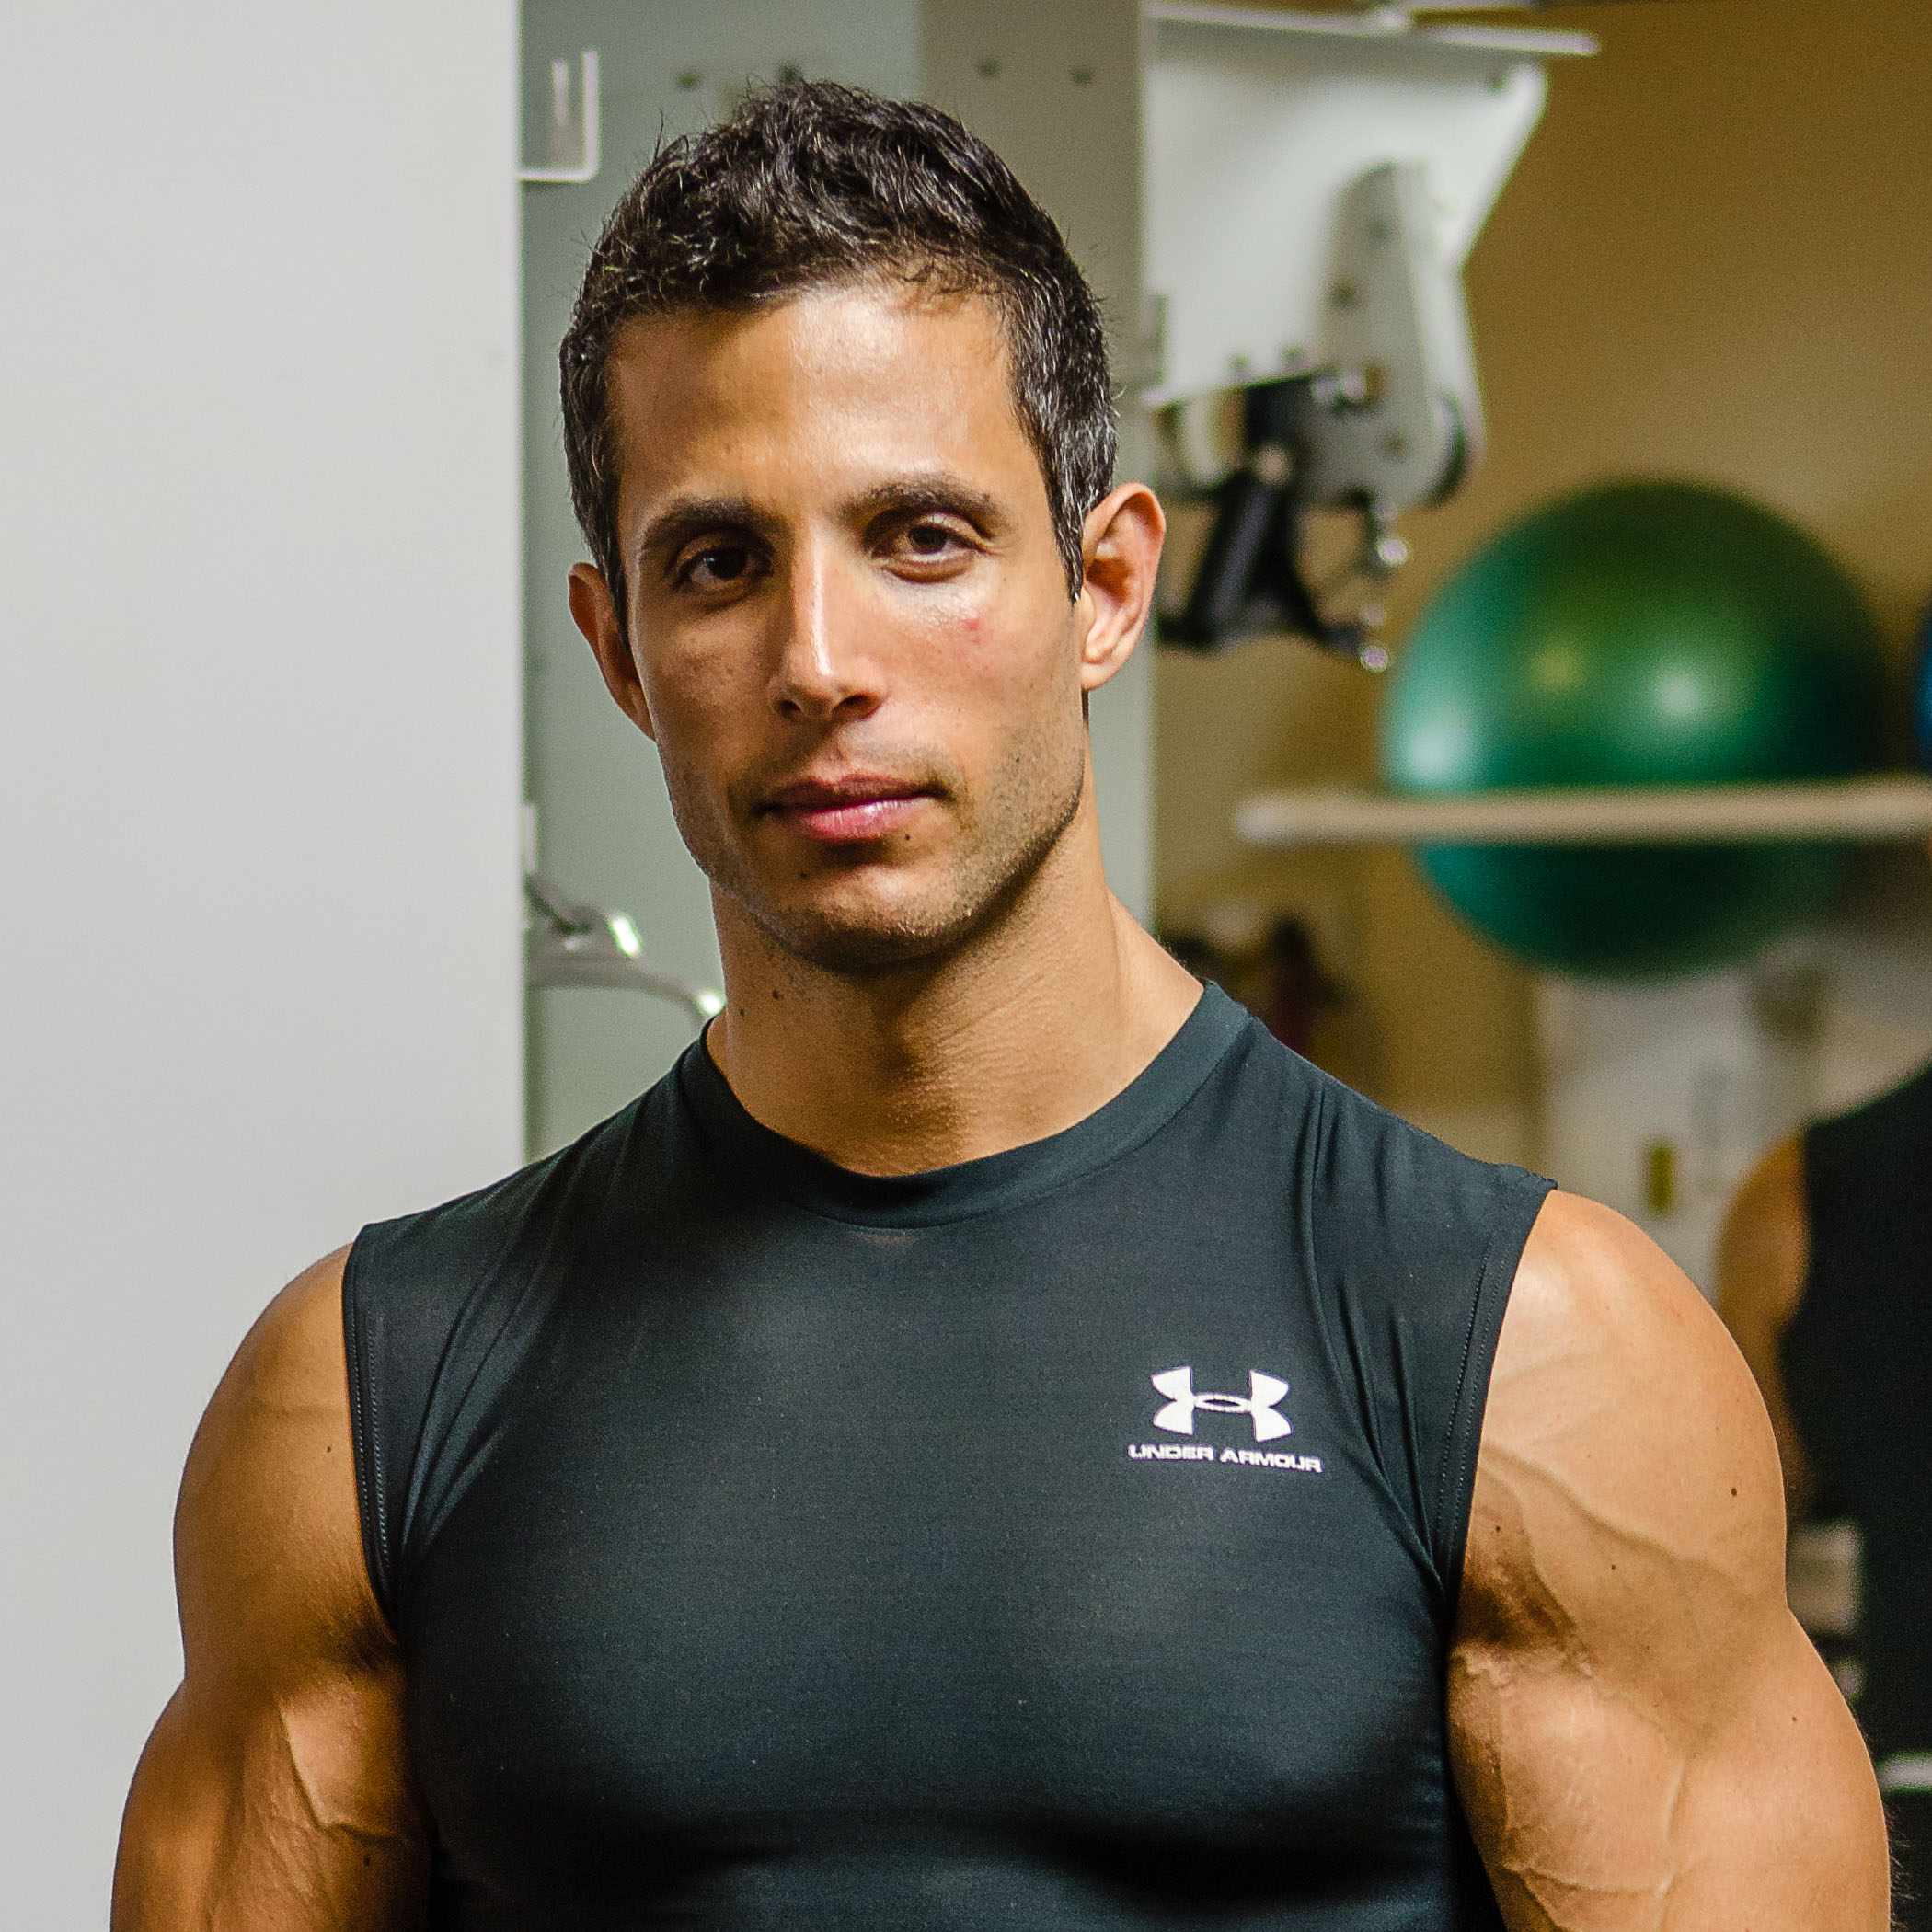 ben greenfield fitness diet fat loss and performance sal was 14 years old when he touched his first weight and from that moment he was hooked growing up asthmatic frequently sick and painfully skinny